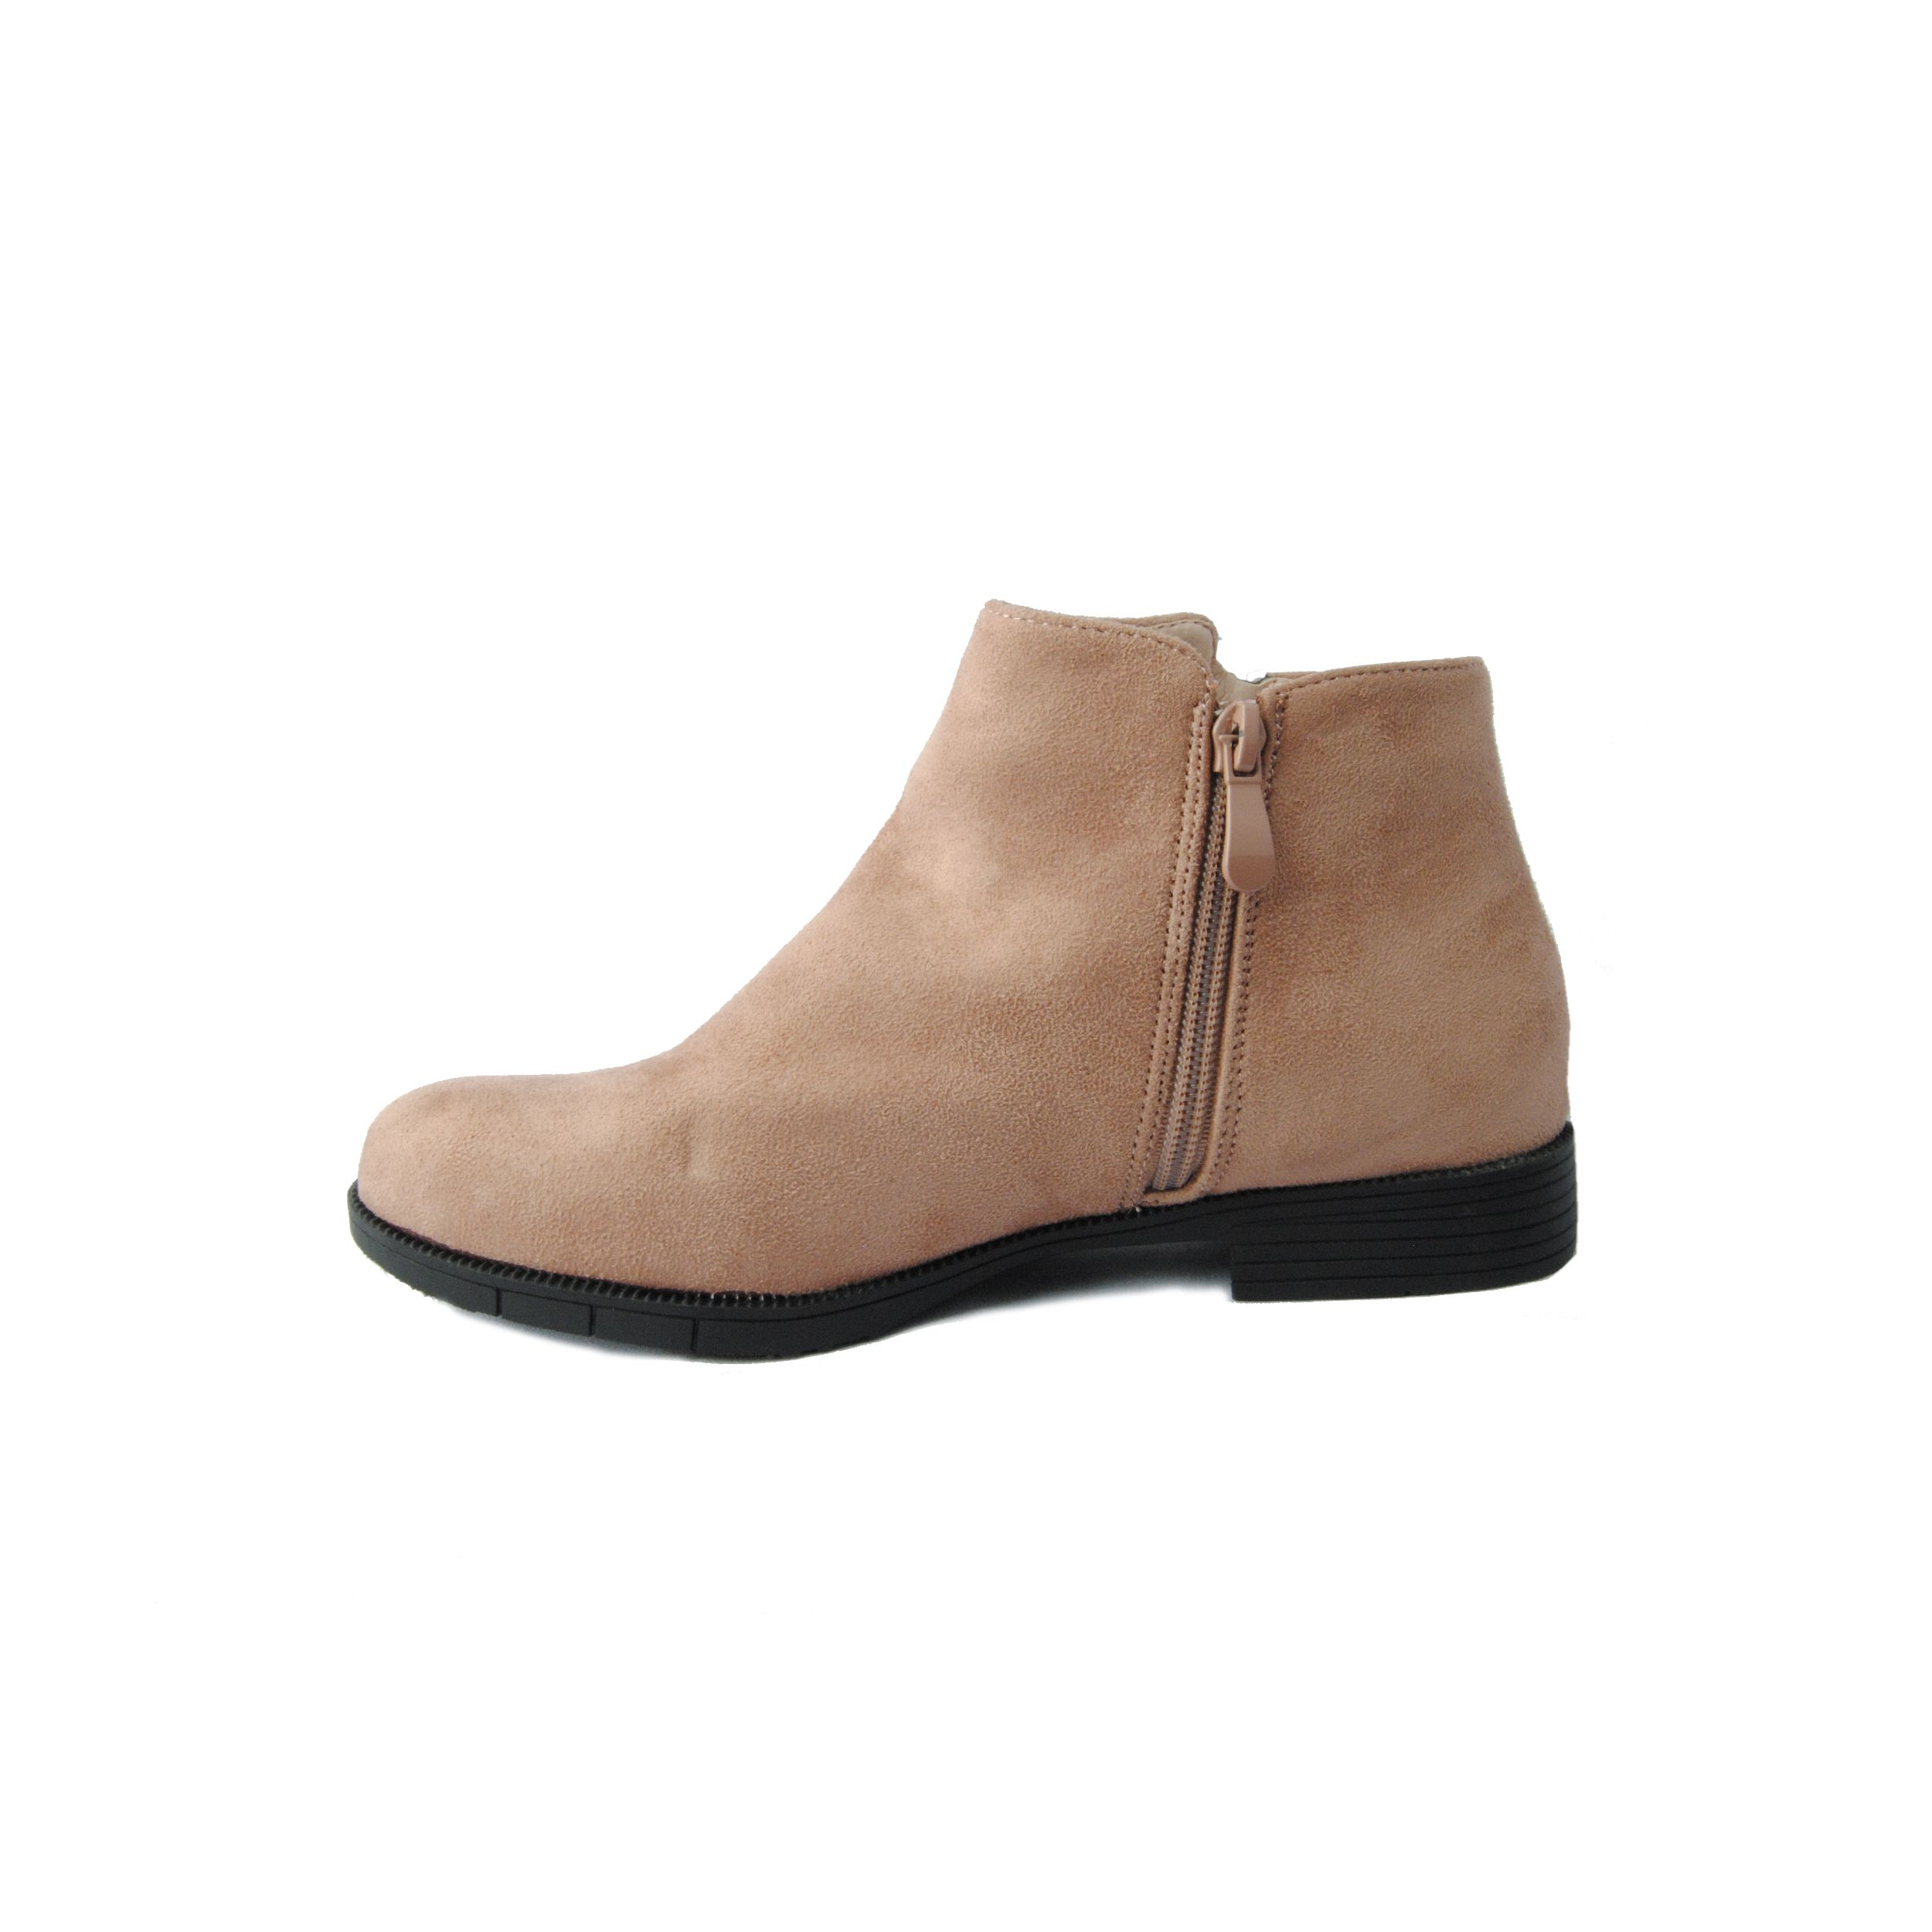 Montevita Flat Ankle Boot in Pink